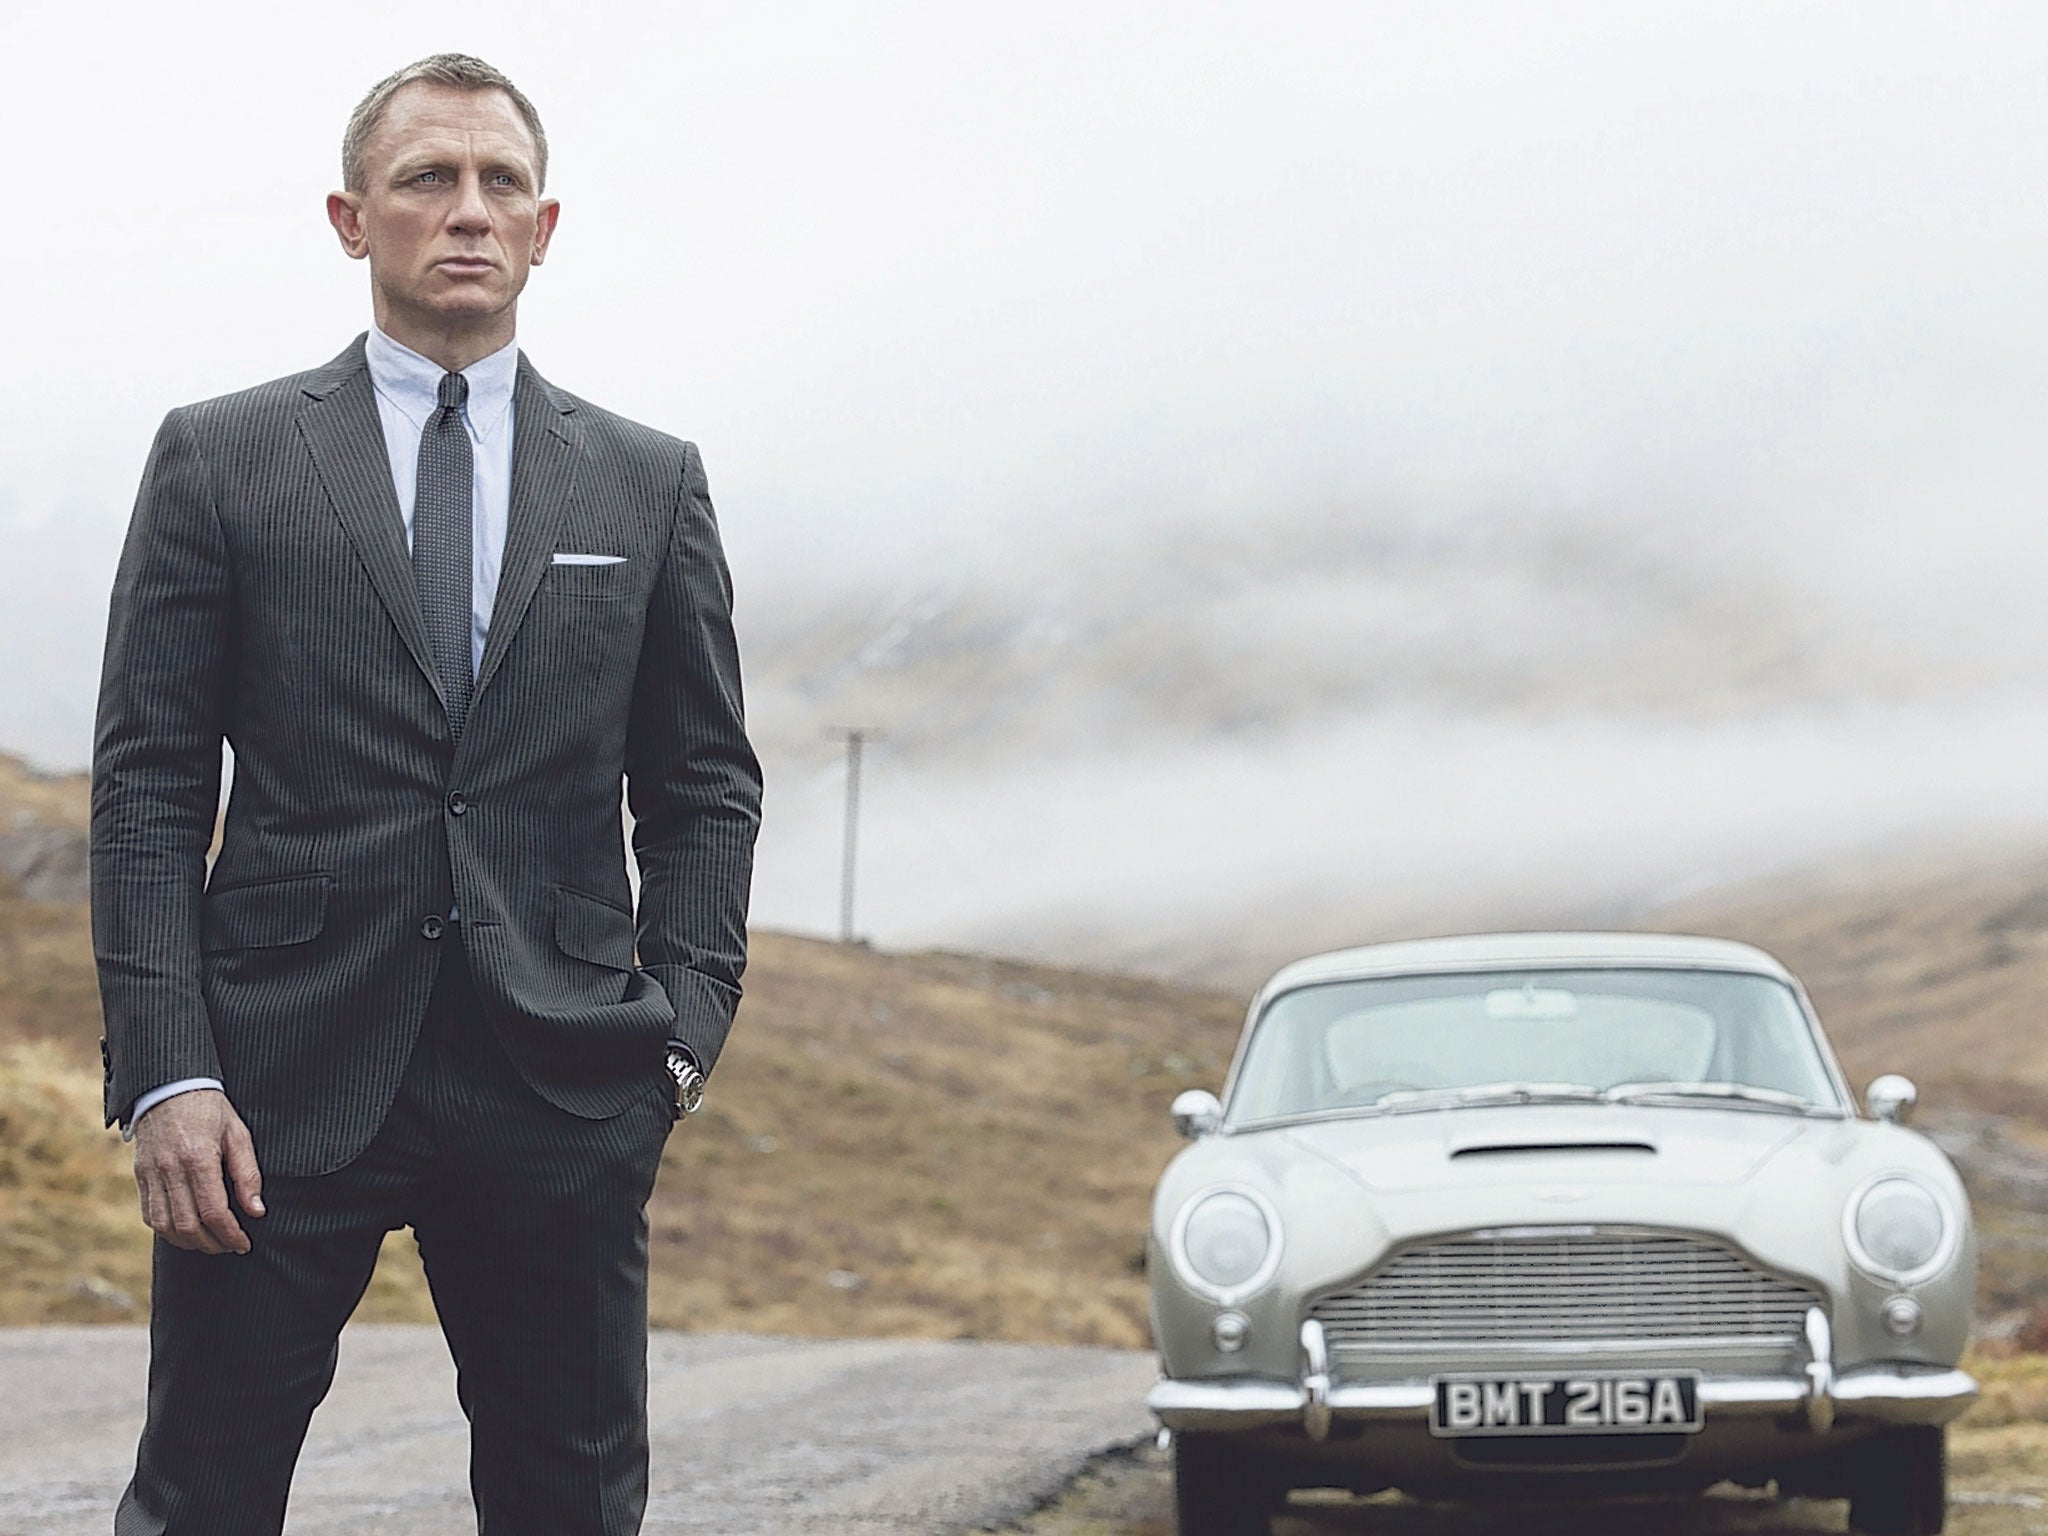 Skyfall tops Christmas Eve TV ratings with 6 million viewers | The ...